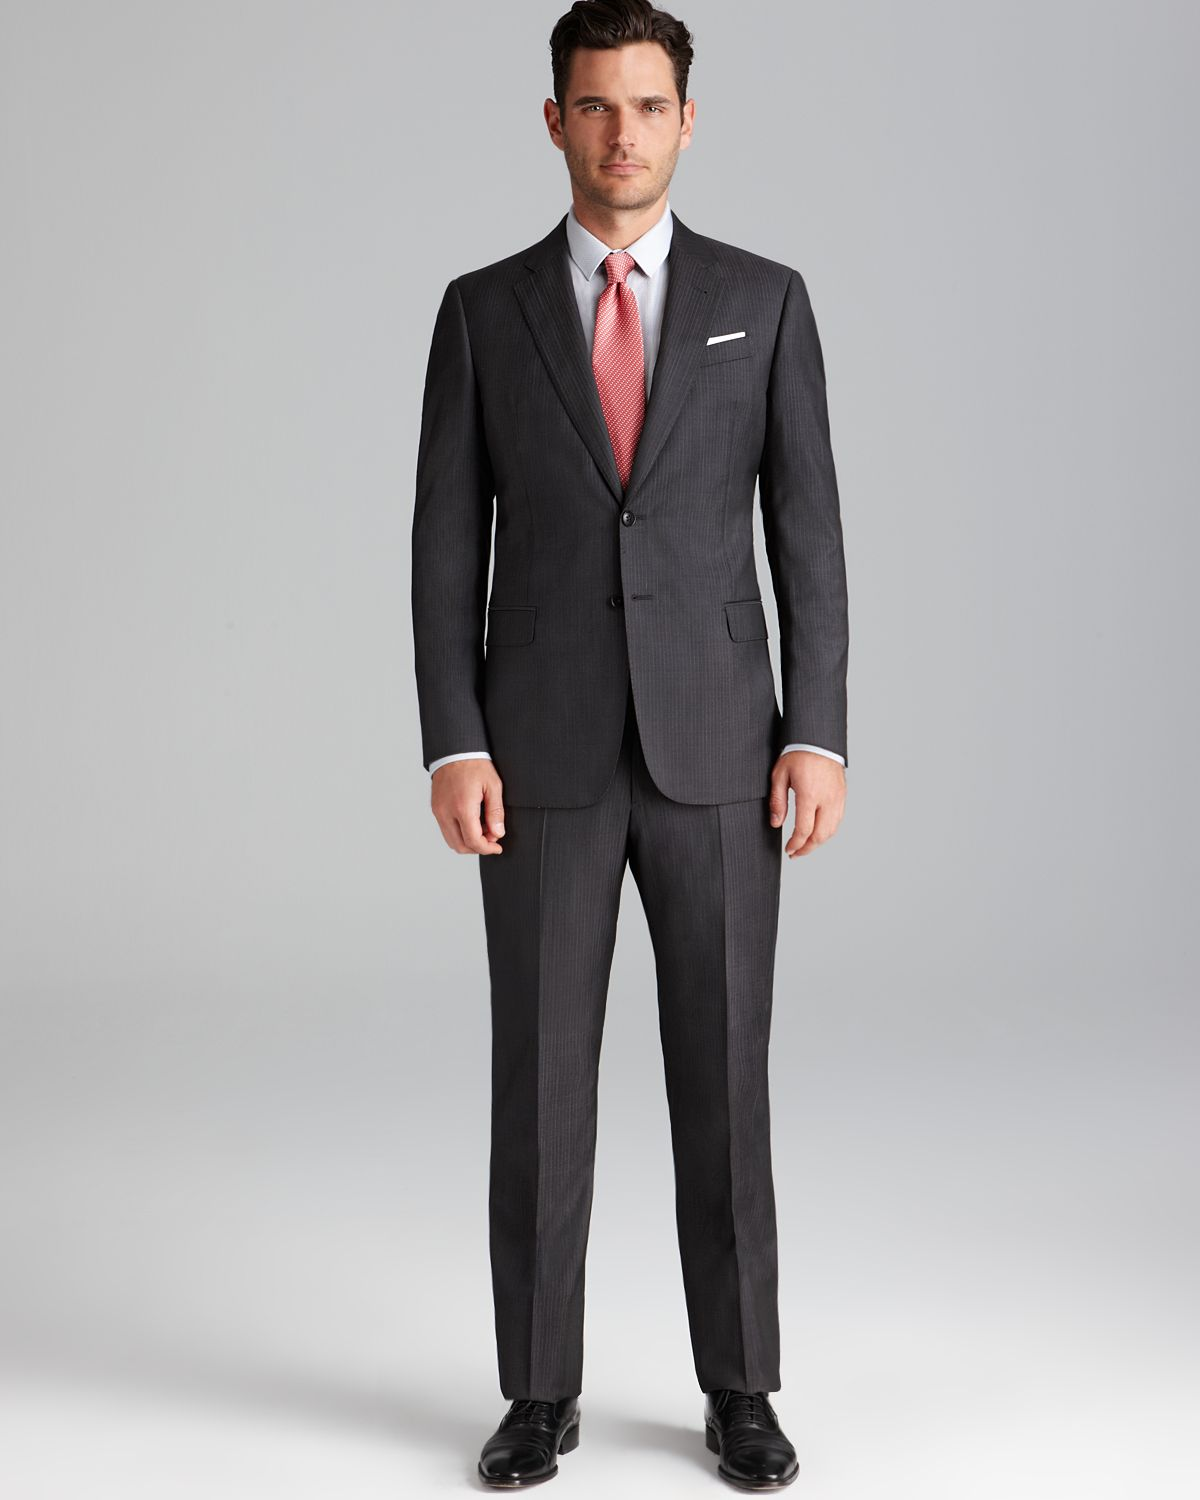 armani suit gallery JNQWRSO